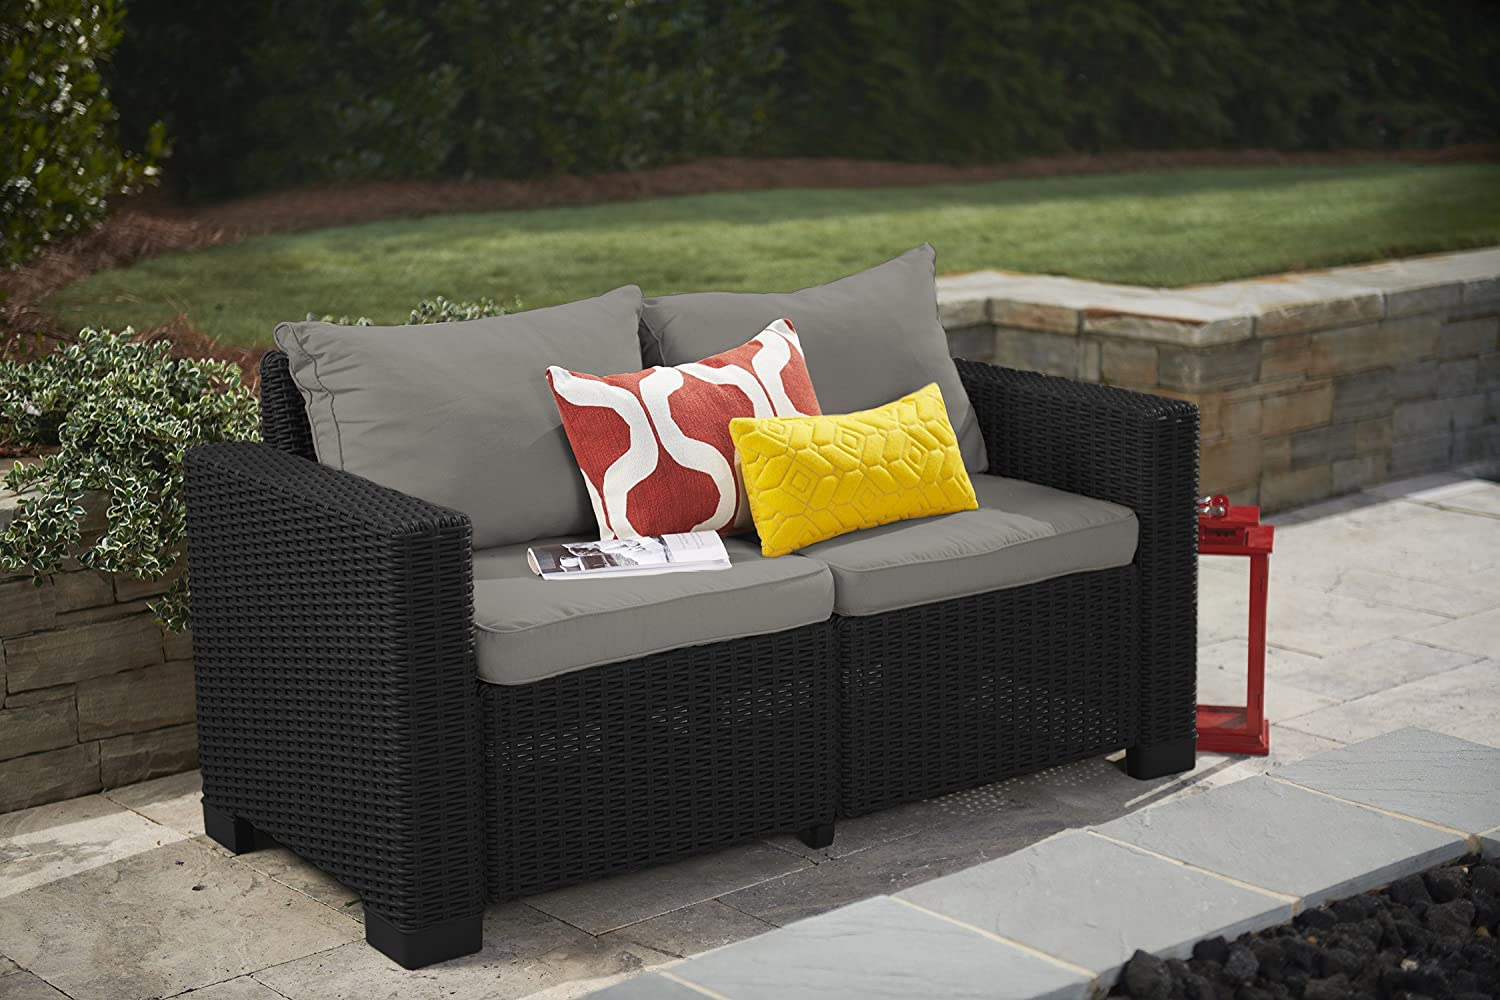 Amazon.com : Keter California All Weather Outdoor 2 Seater Patio Sofa  Loveseat With Cushions In A Resin Plastic Wicker Pattern, Graphite/Cool  Grey : Garden ...